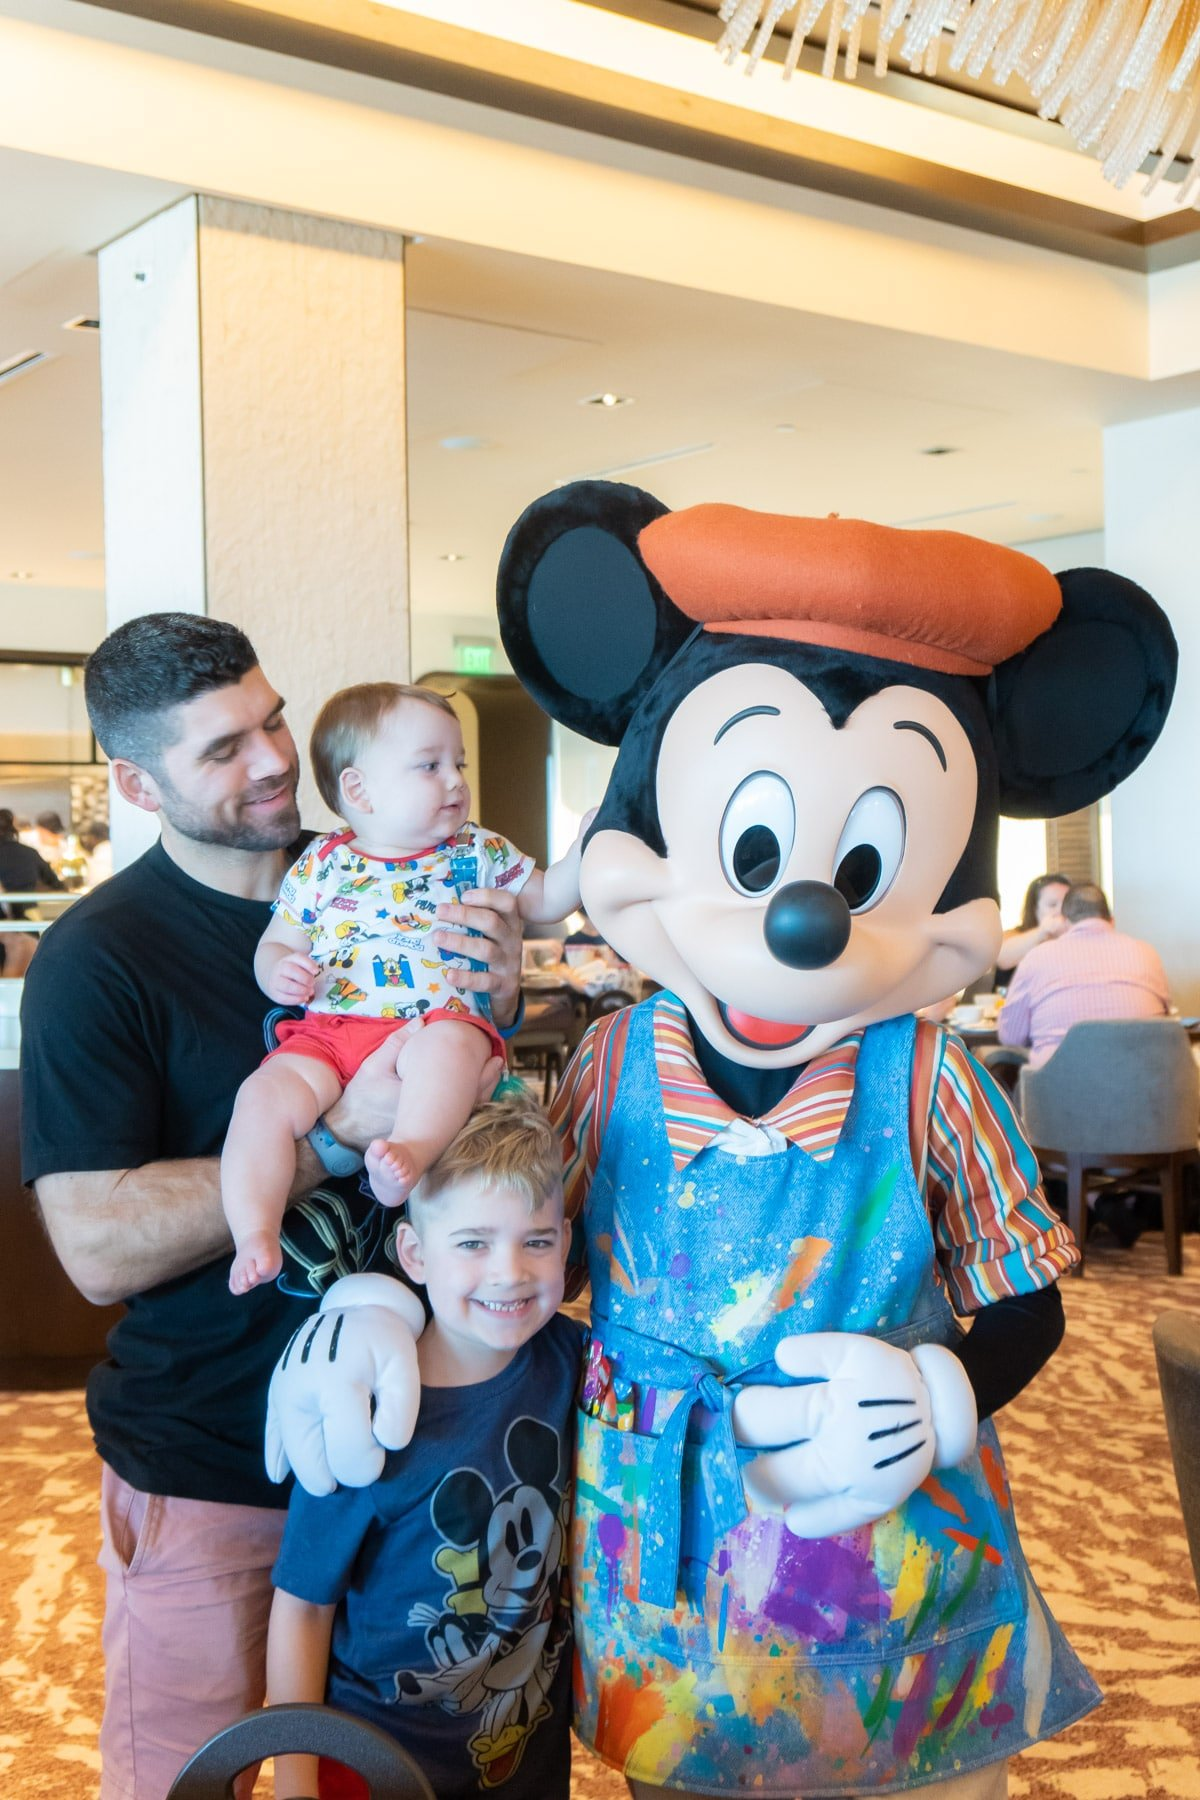 Family with Mickey Mouse in painter's outfit